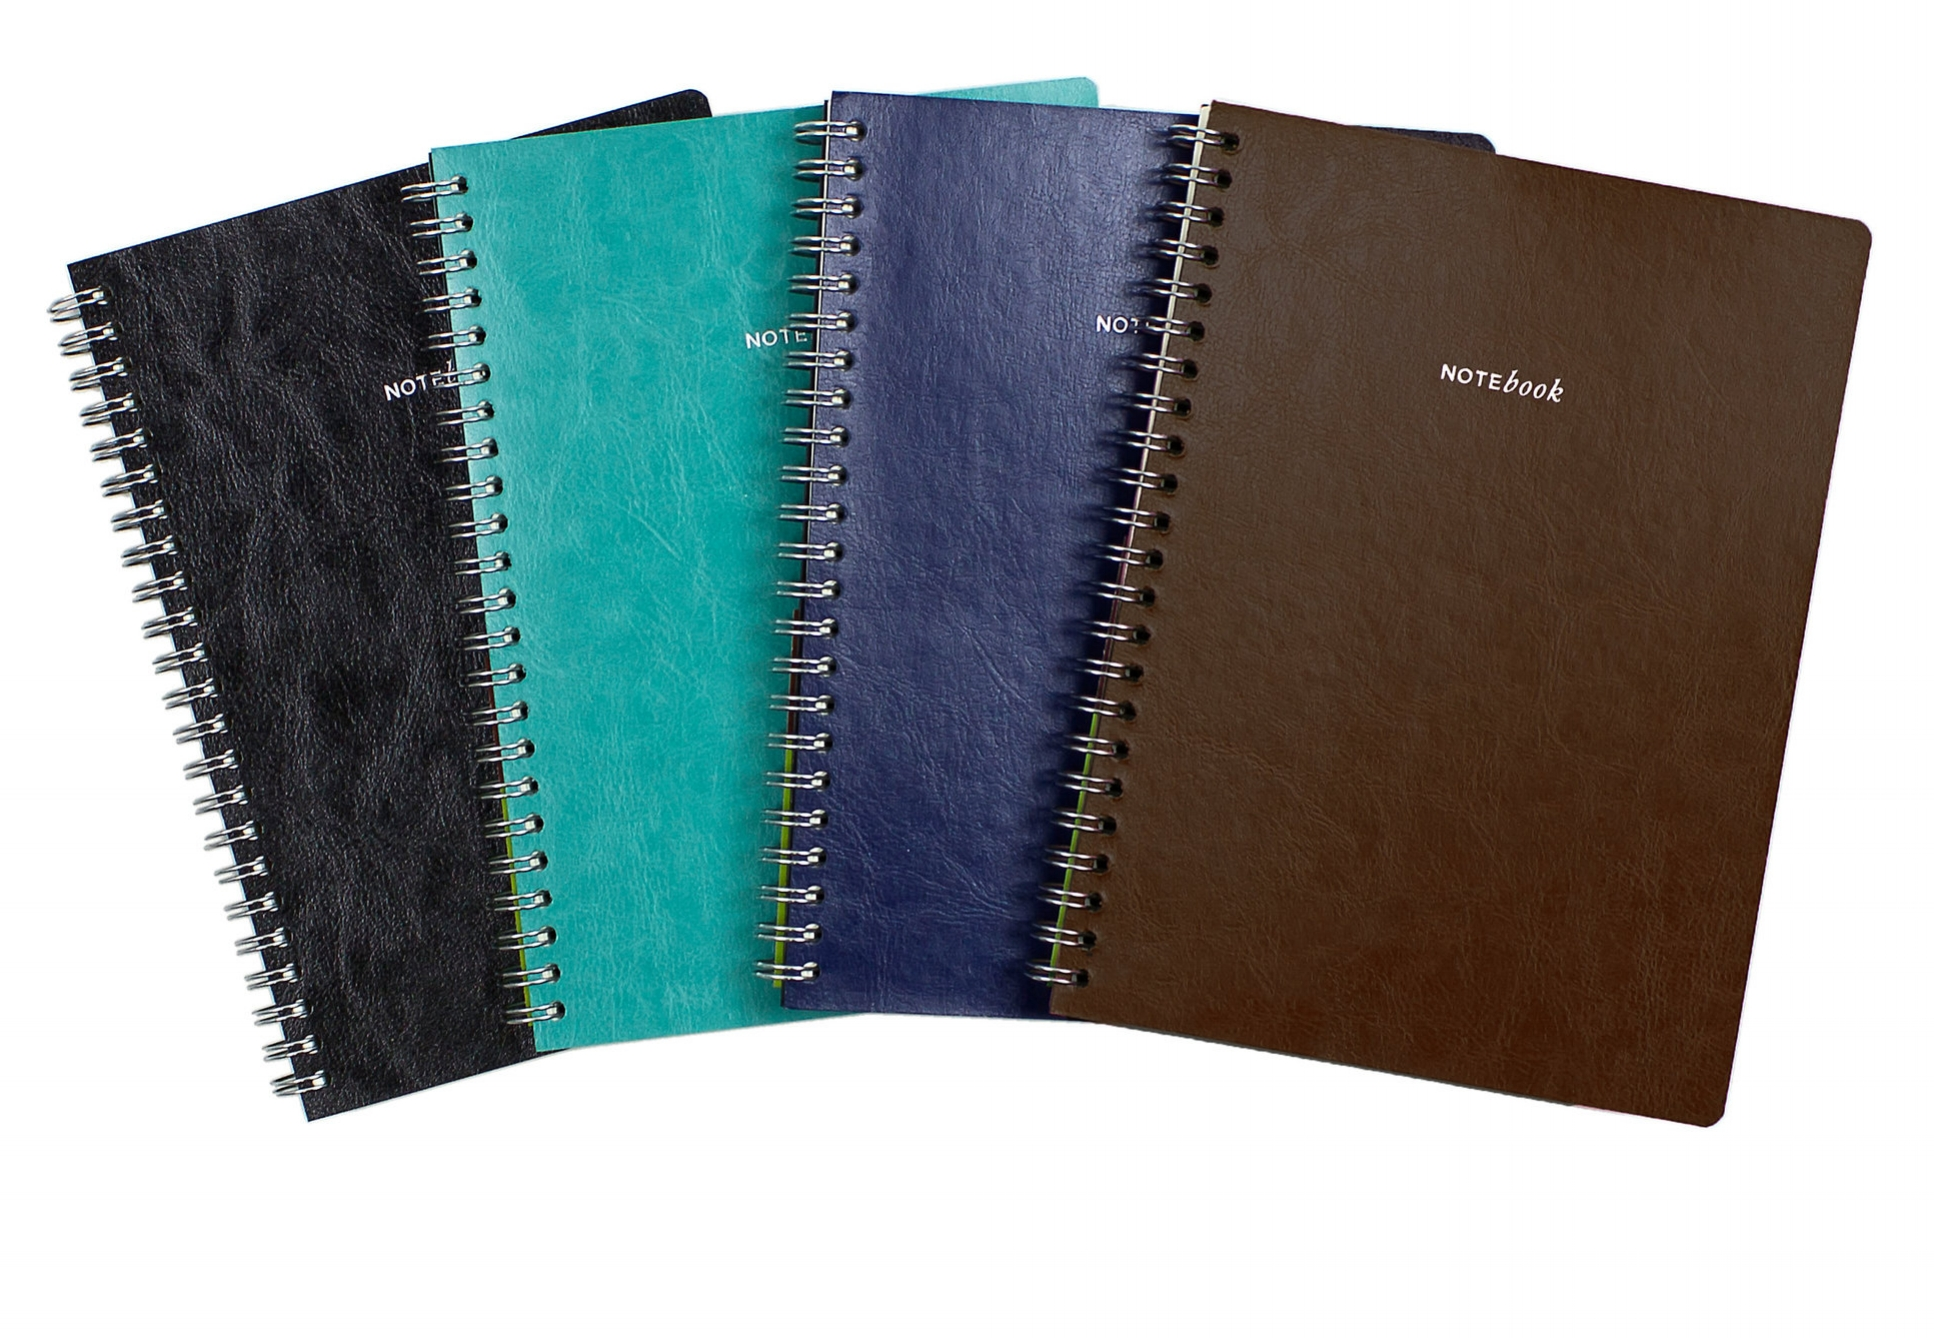 Leather-Look Journal // Greenroom, available at Target